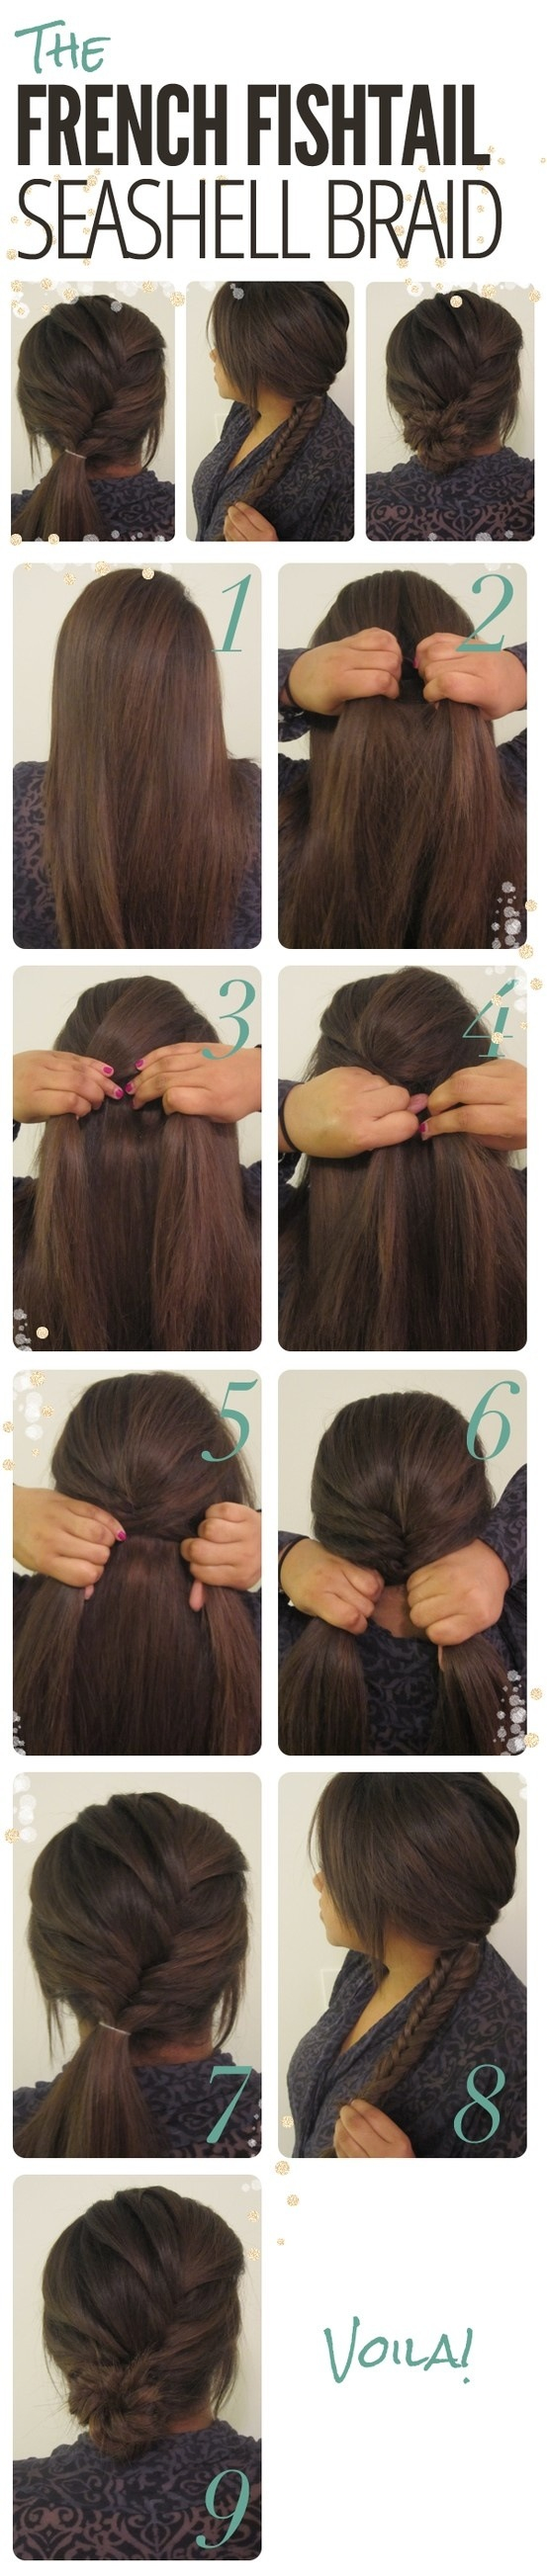 Cool way to do your hair and look good  Hair styles, Long hair